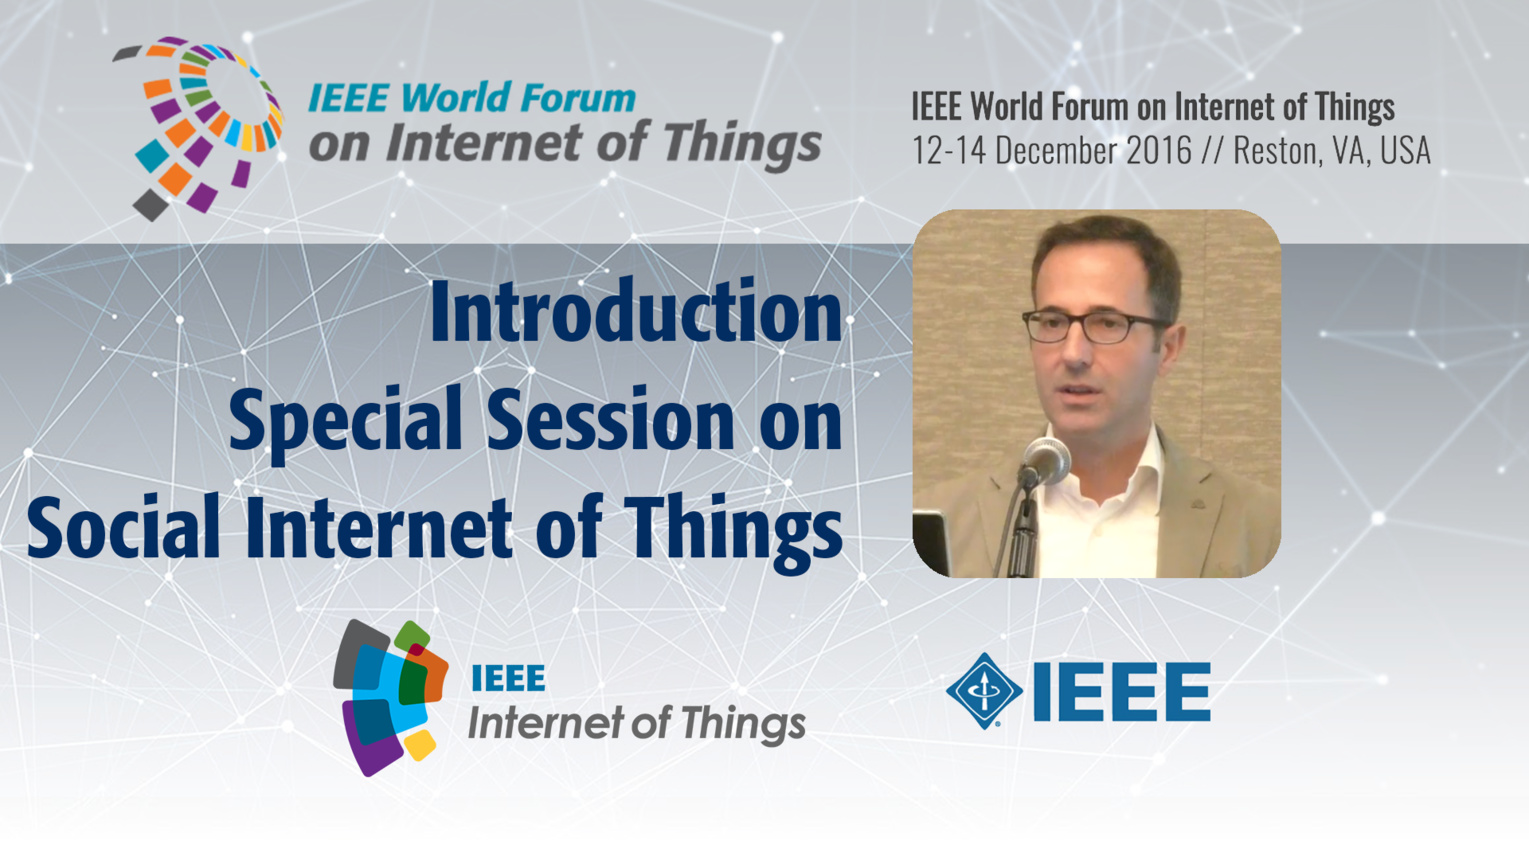 Special Session on Social Internet of Things Introduction: WF-IoT 2016